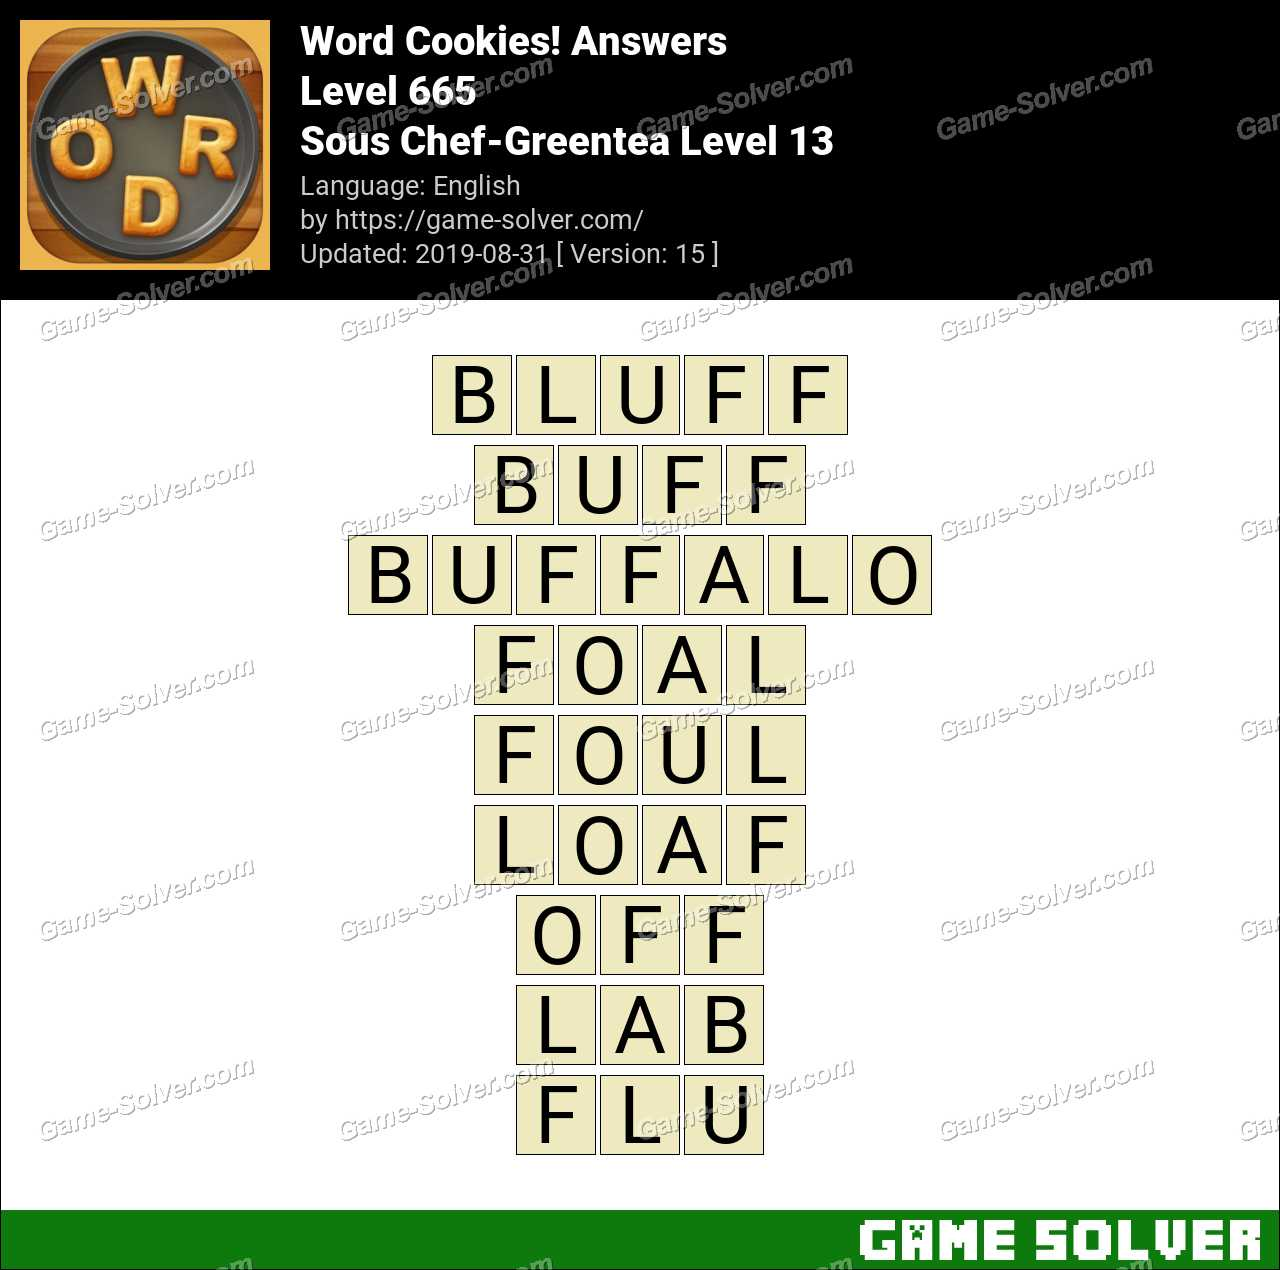 Word Cookies Sous Chef-Greentea Level 13 Answers